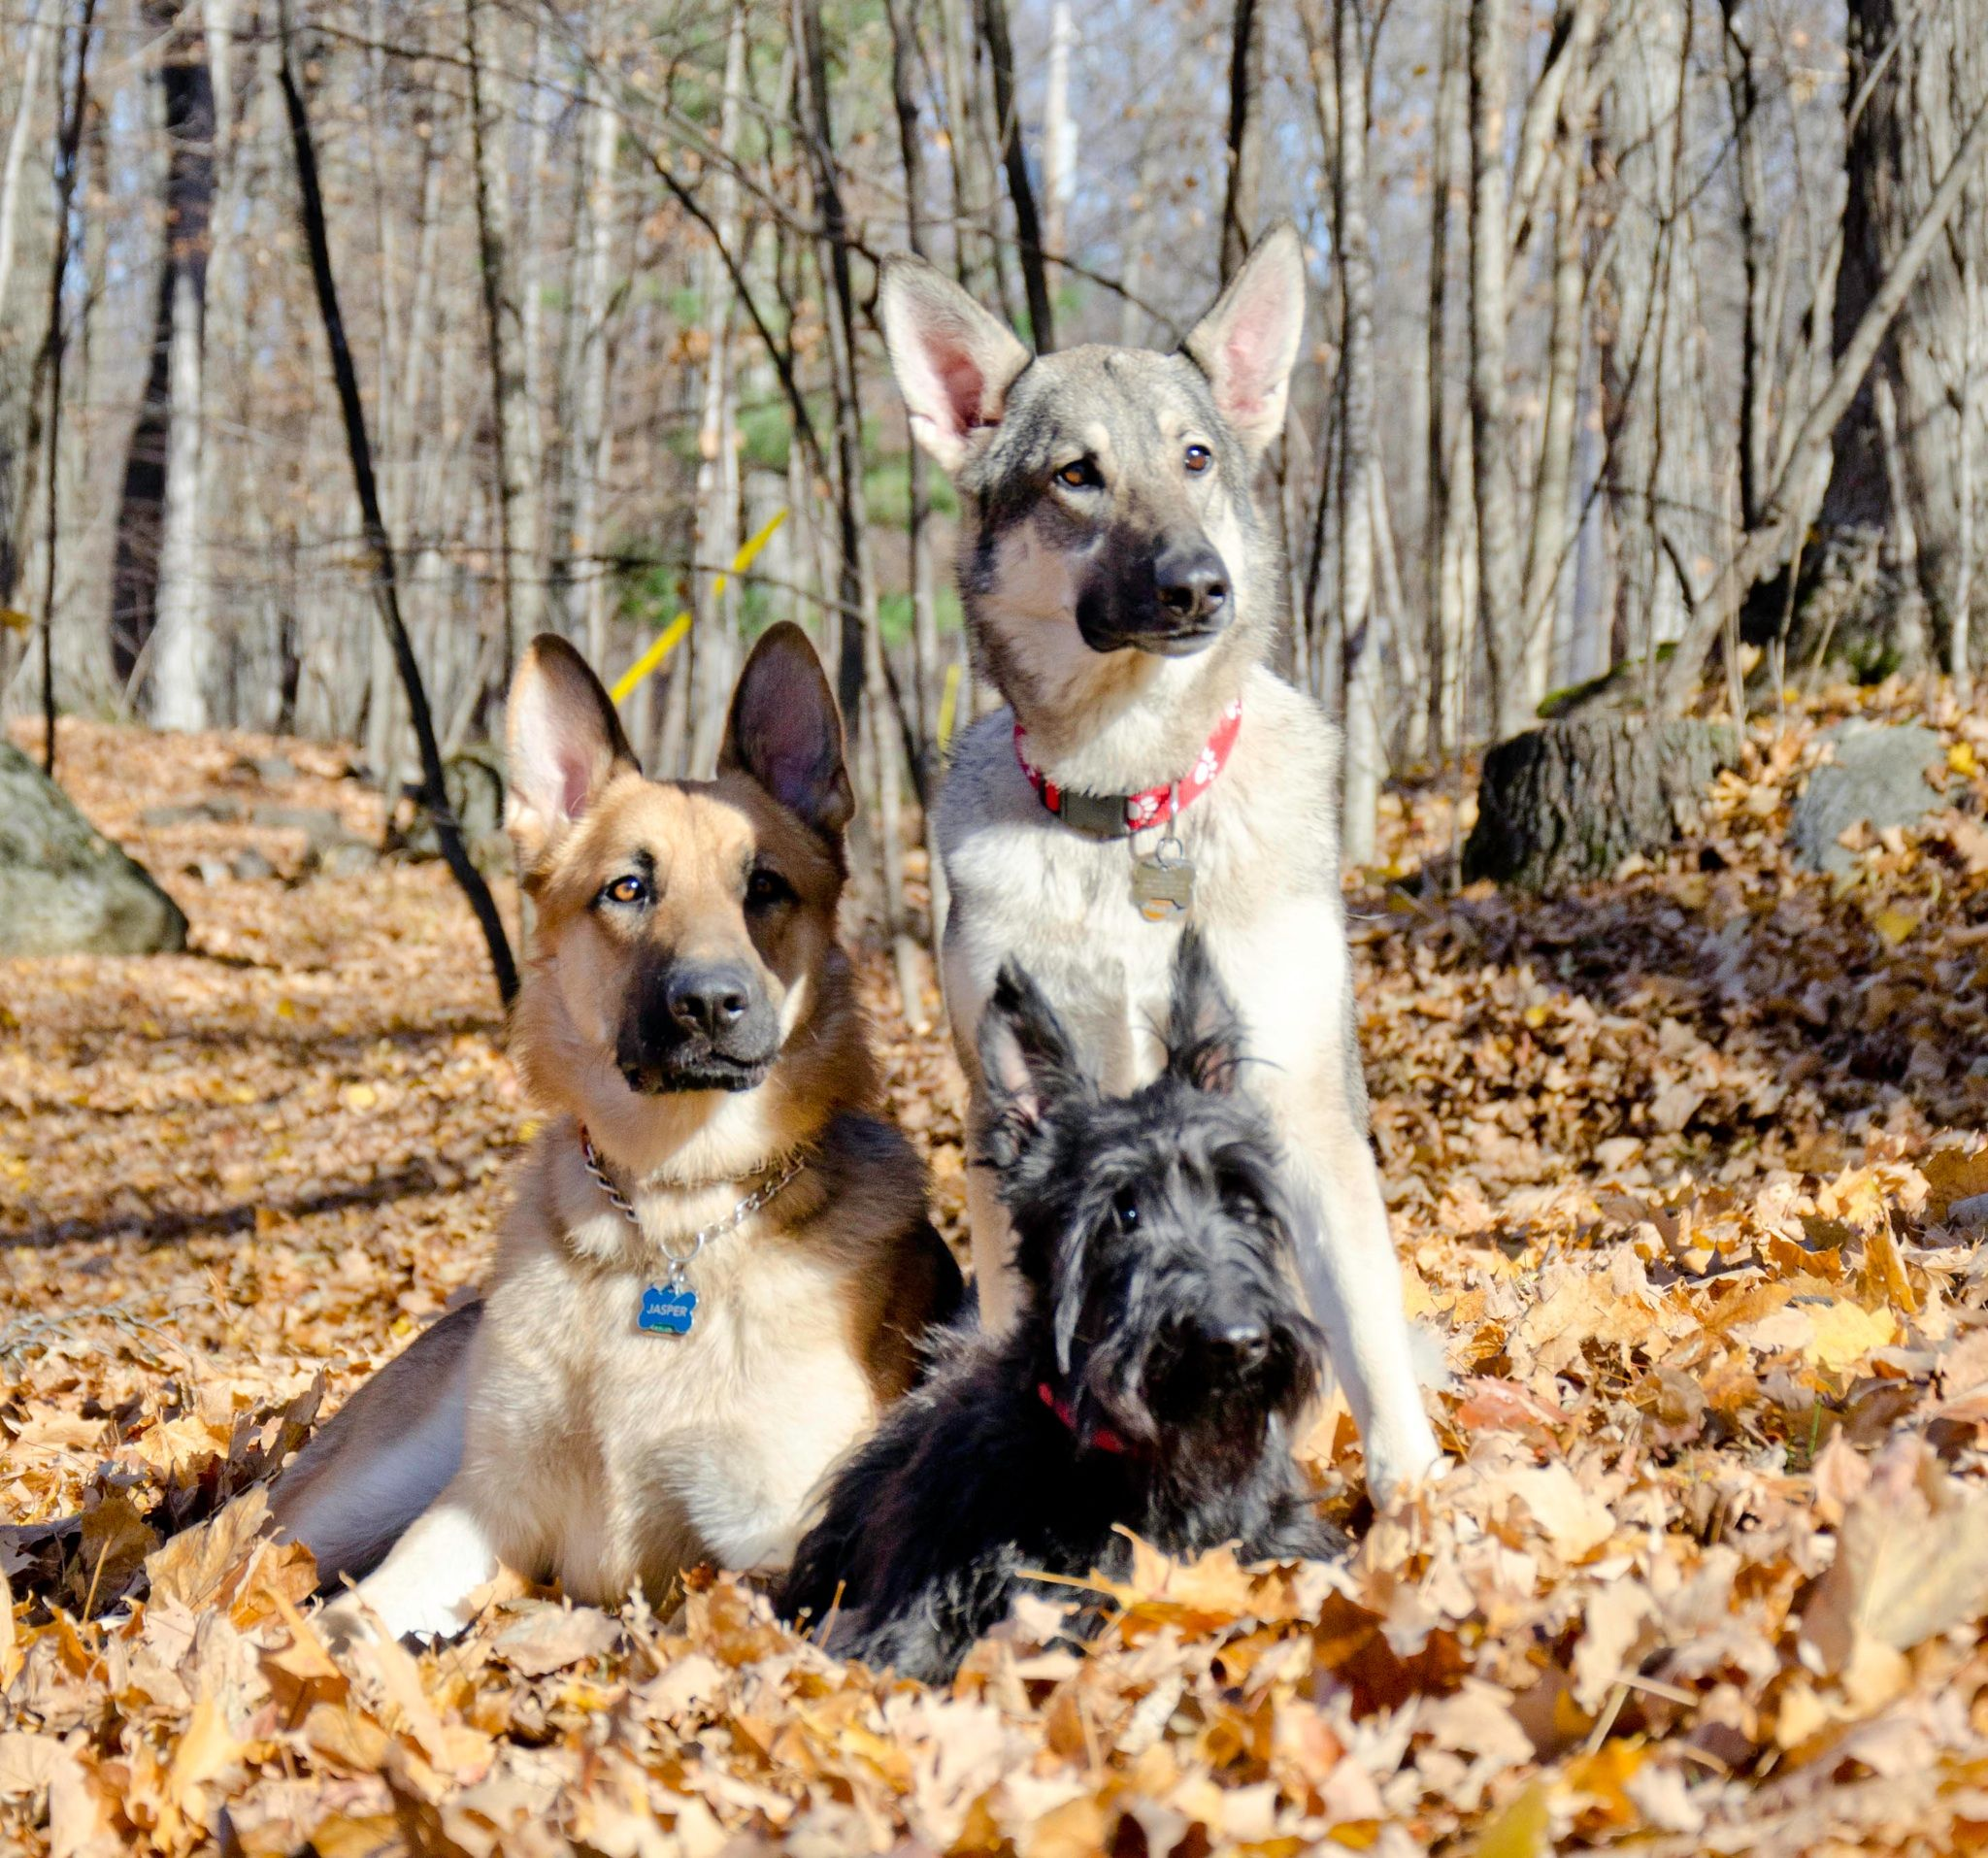 Our happy dog family portrait German Shepherds Jasper and